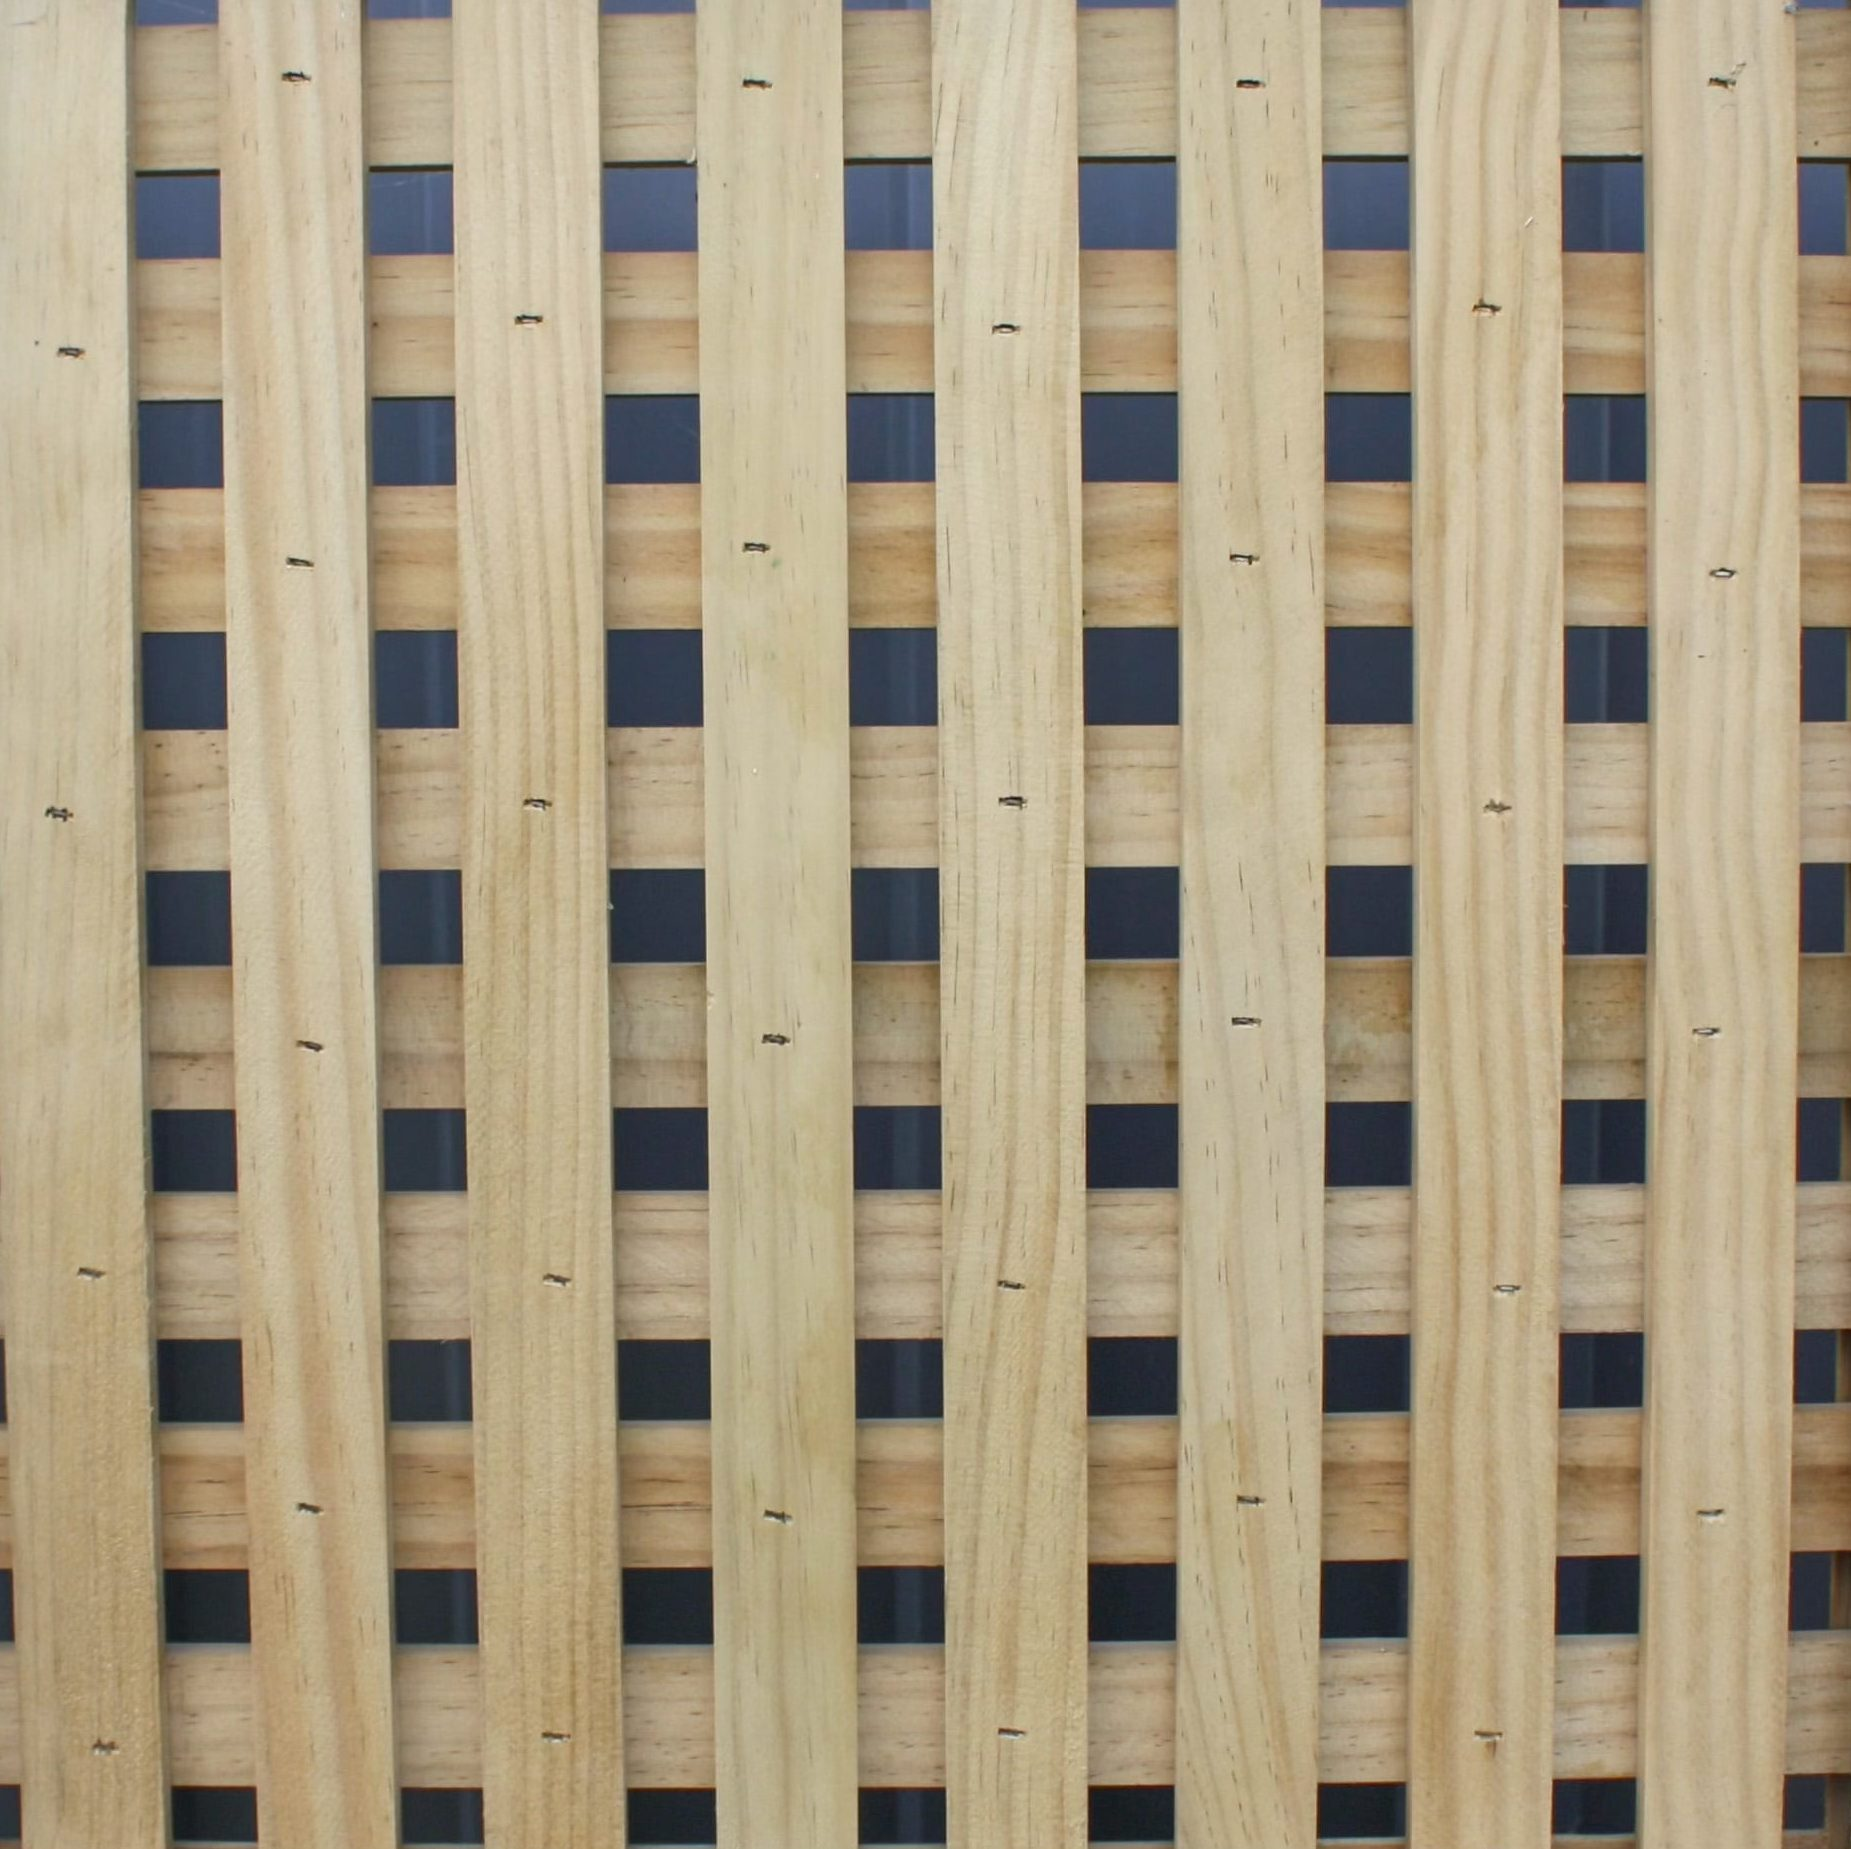 A picture of a 20 mm Square fence design.